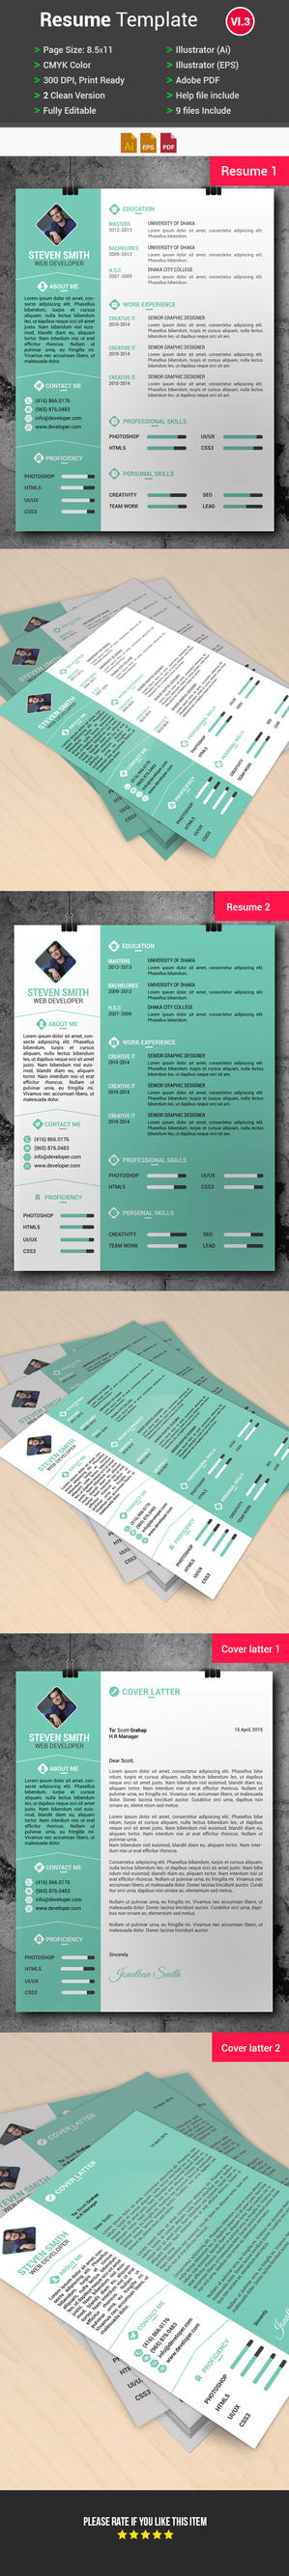 resume  cv template  free download  by arahimdesign on deviantart